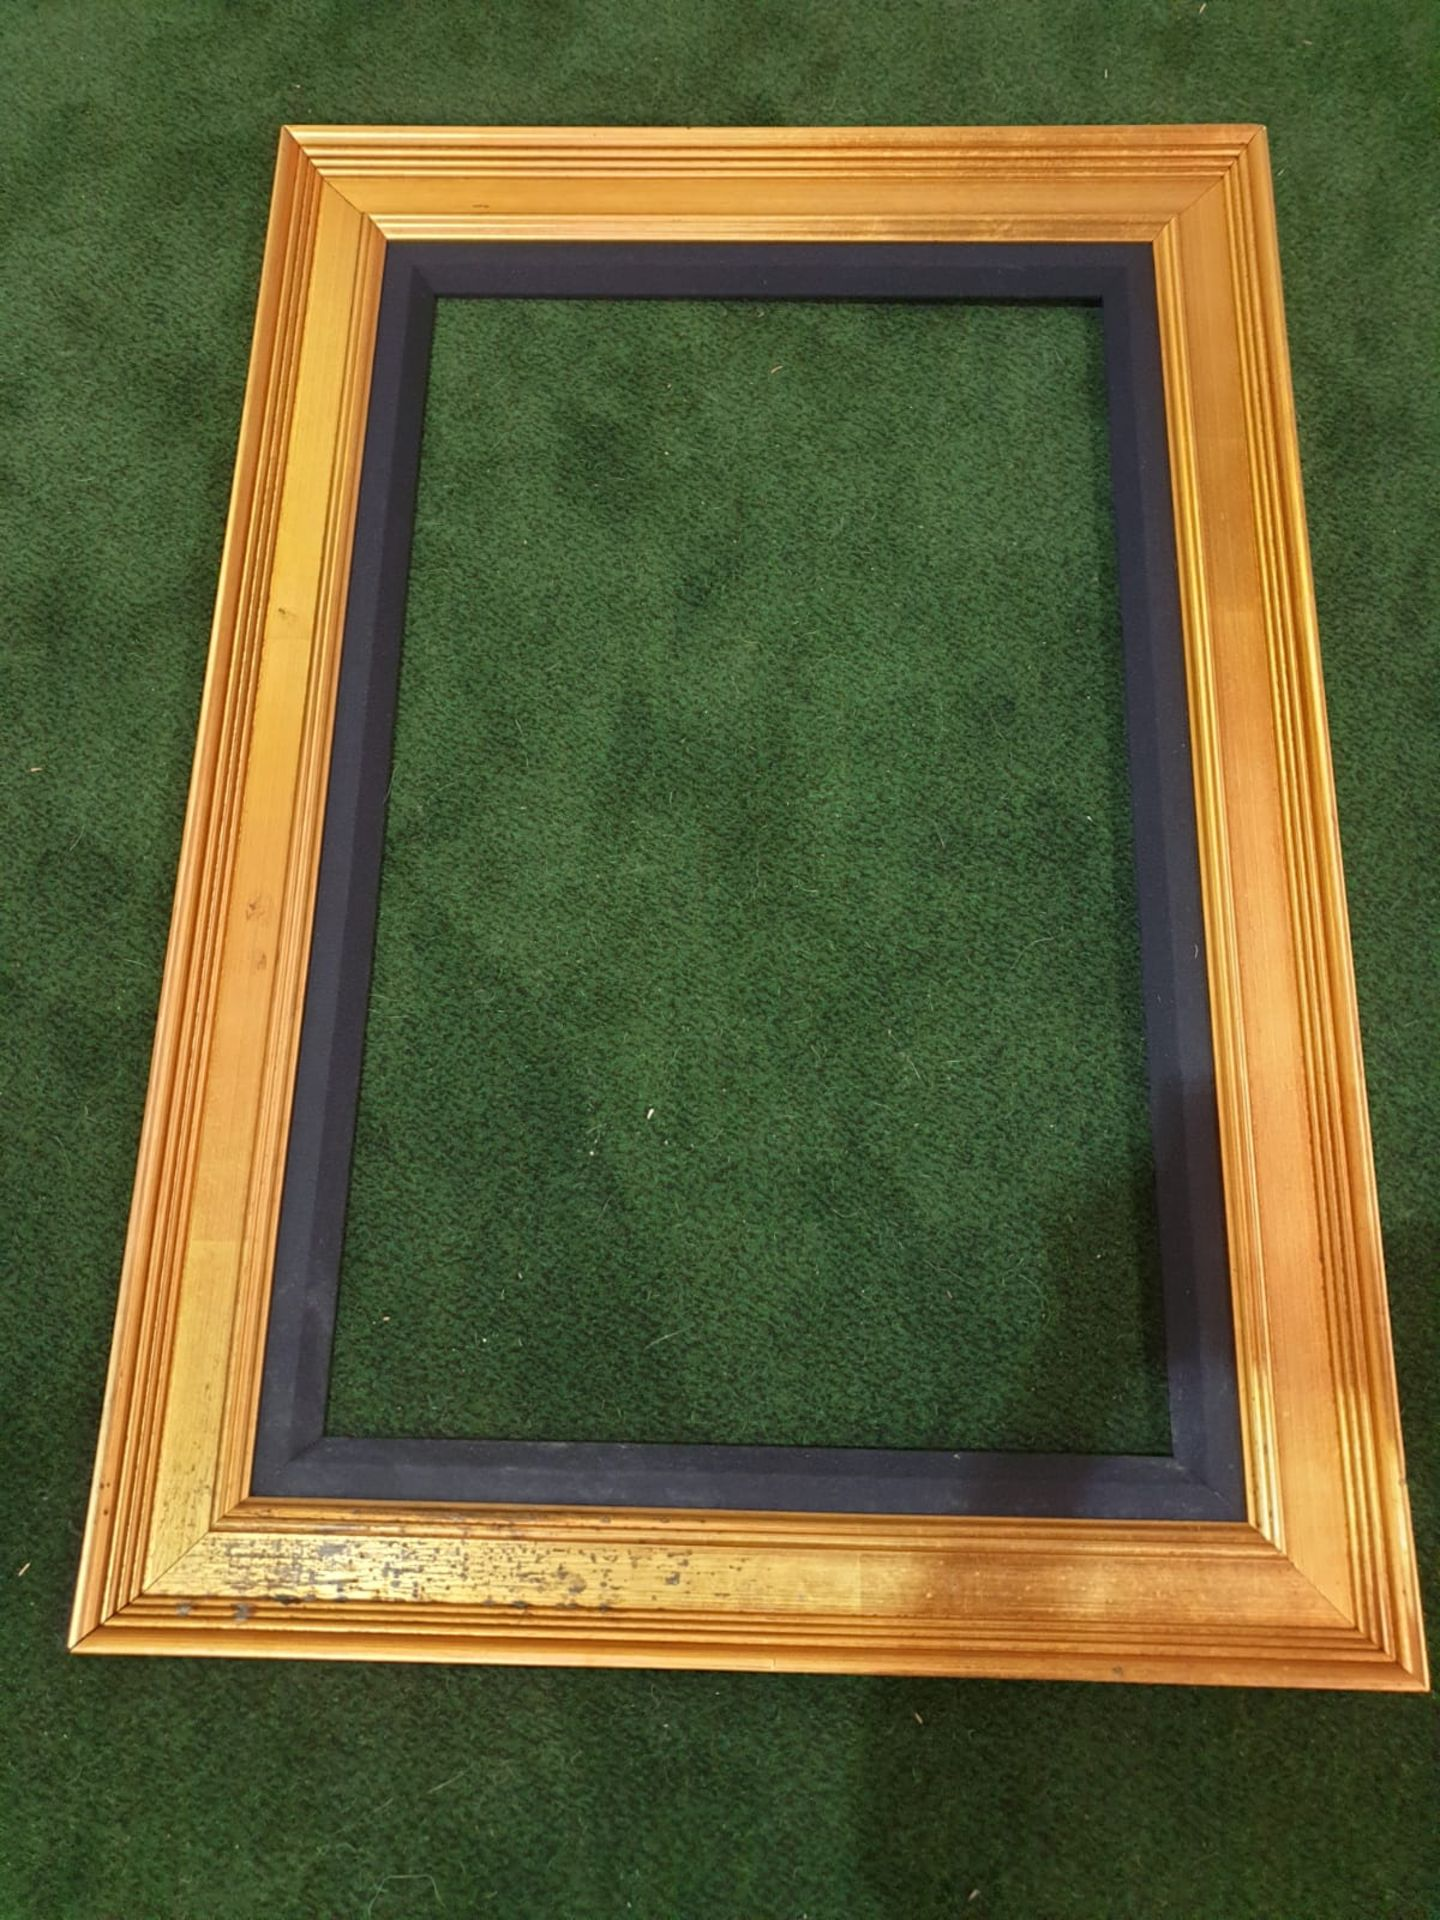 Gilt picture frame 80 x 116cm - Image 3 of 3